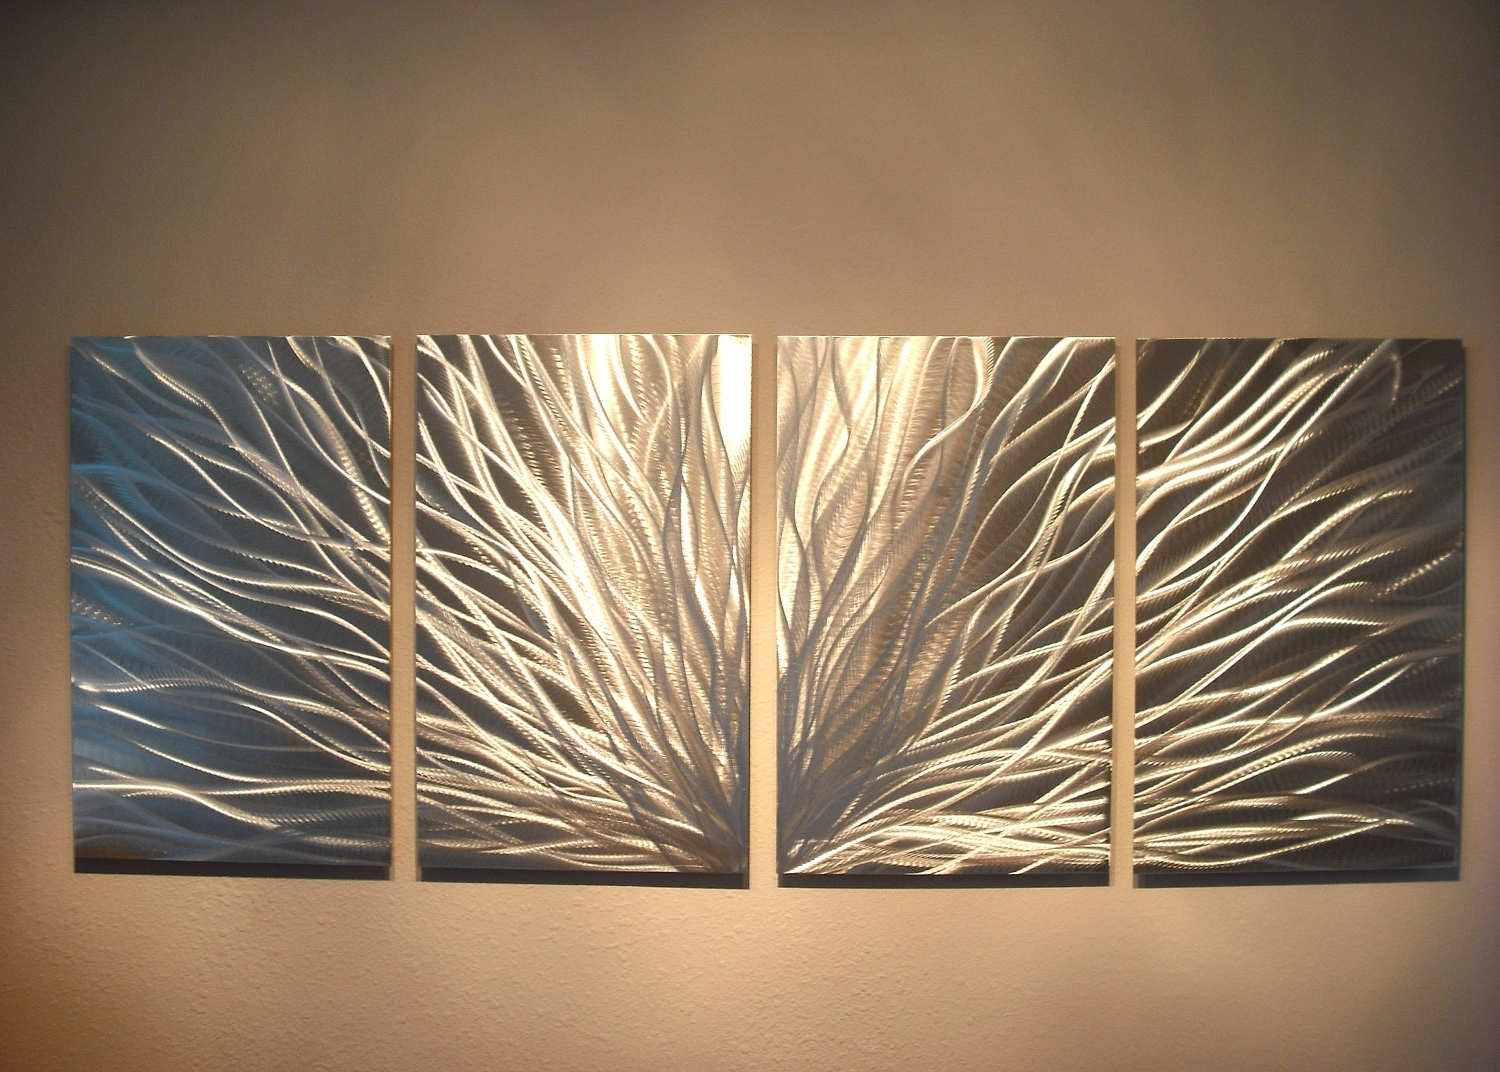 Radiance – Abstract Metal Wall Art Contemporary Modern Decor Within Fashionable Large Metal Wall Art Sculptures (Gallery 3 of 15)